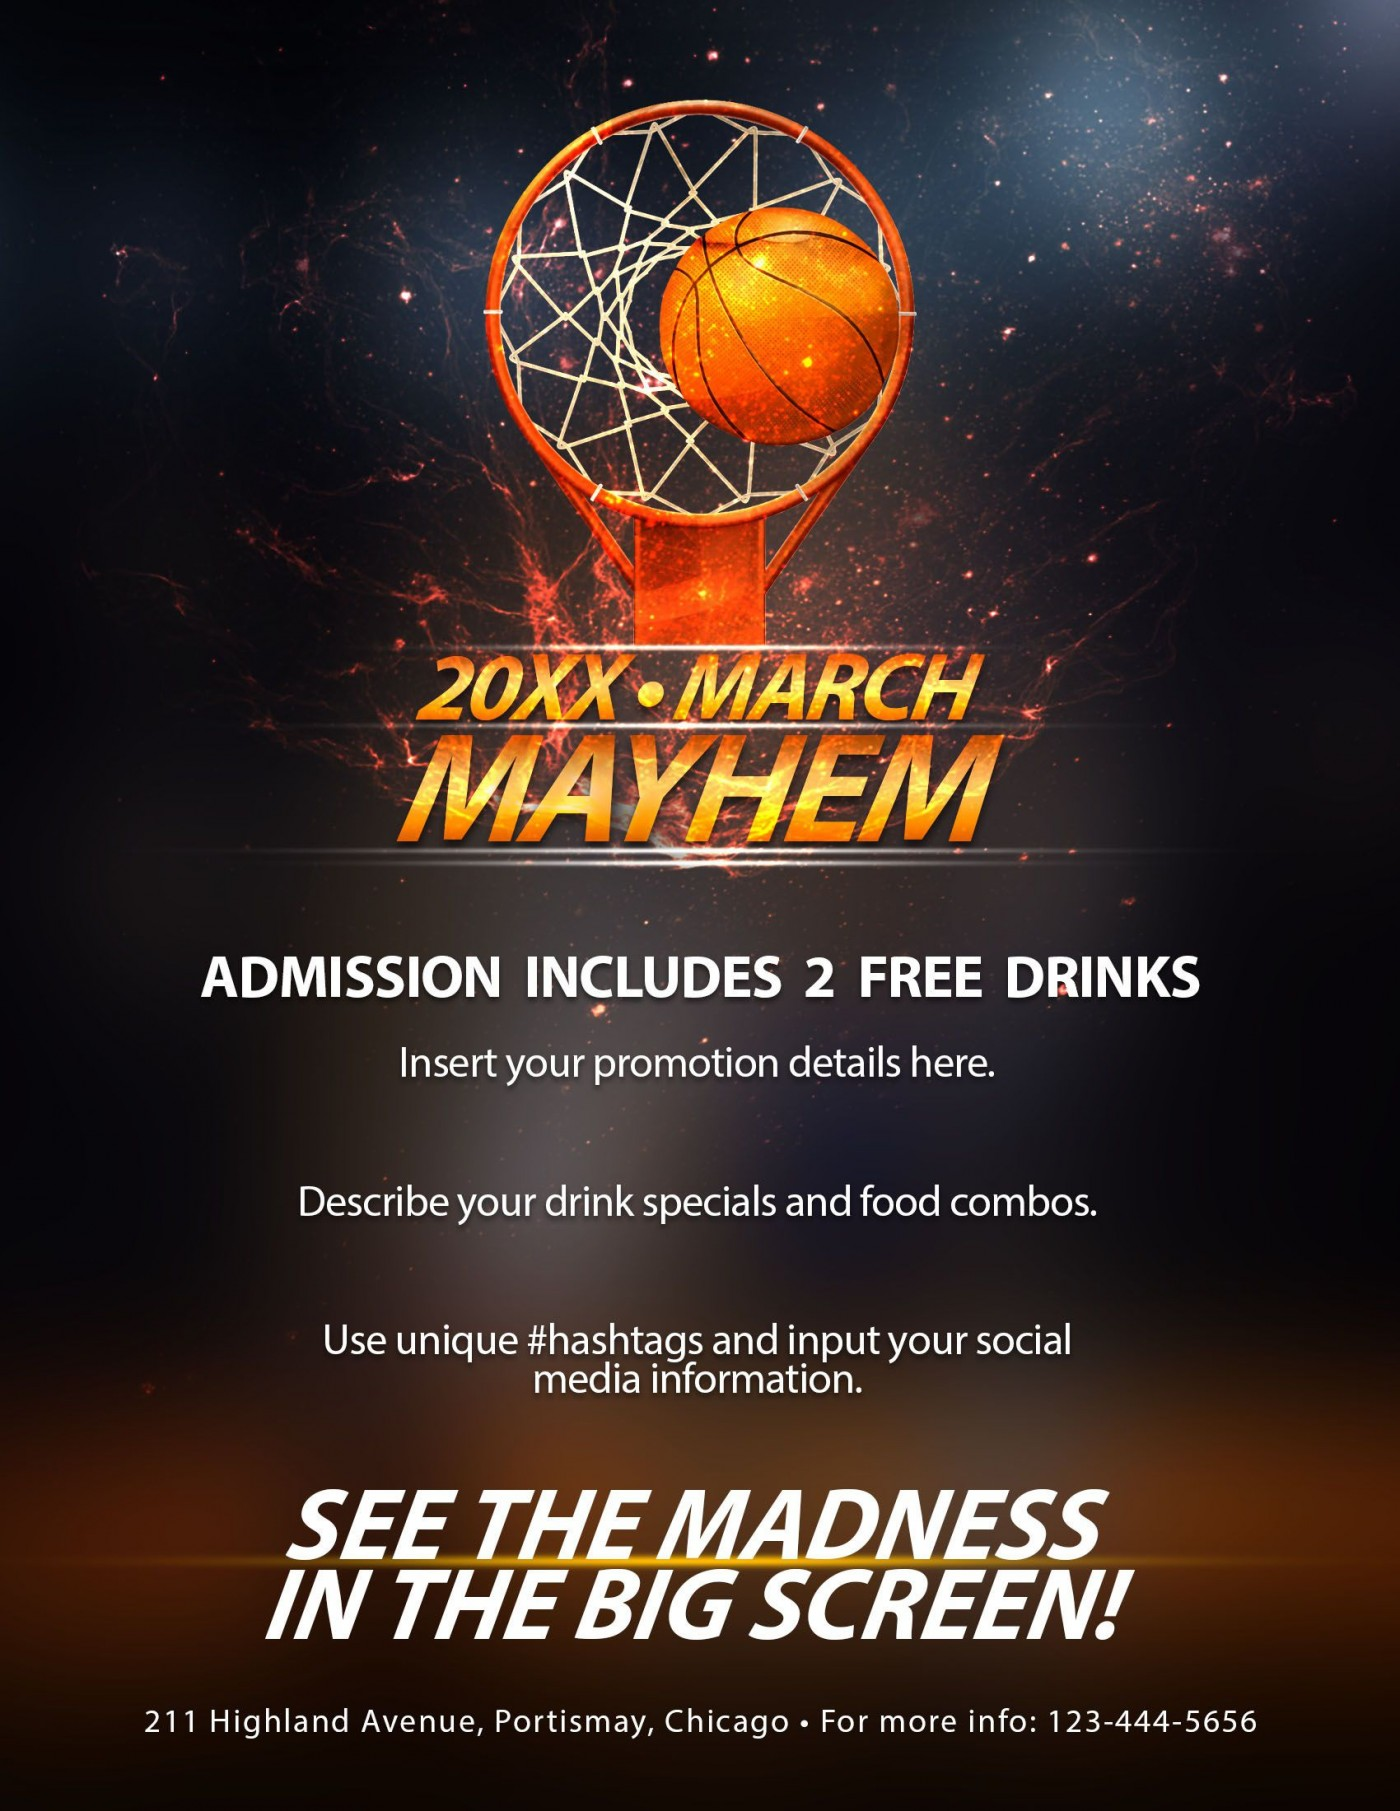 006 Surprising Free Basketball Flyer Template Design  Game 3 On Tournament Word1400